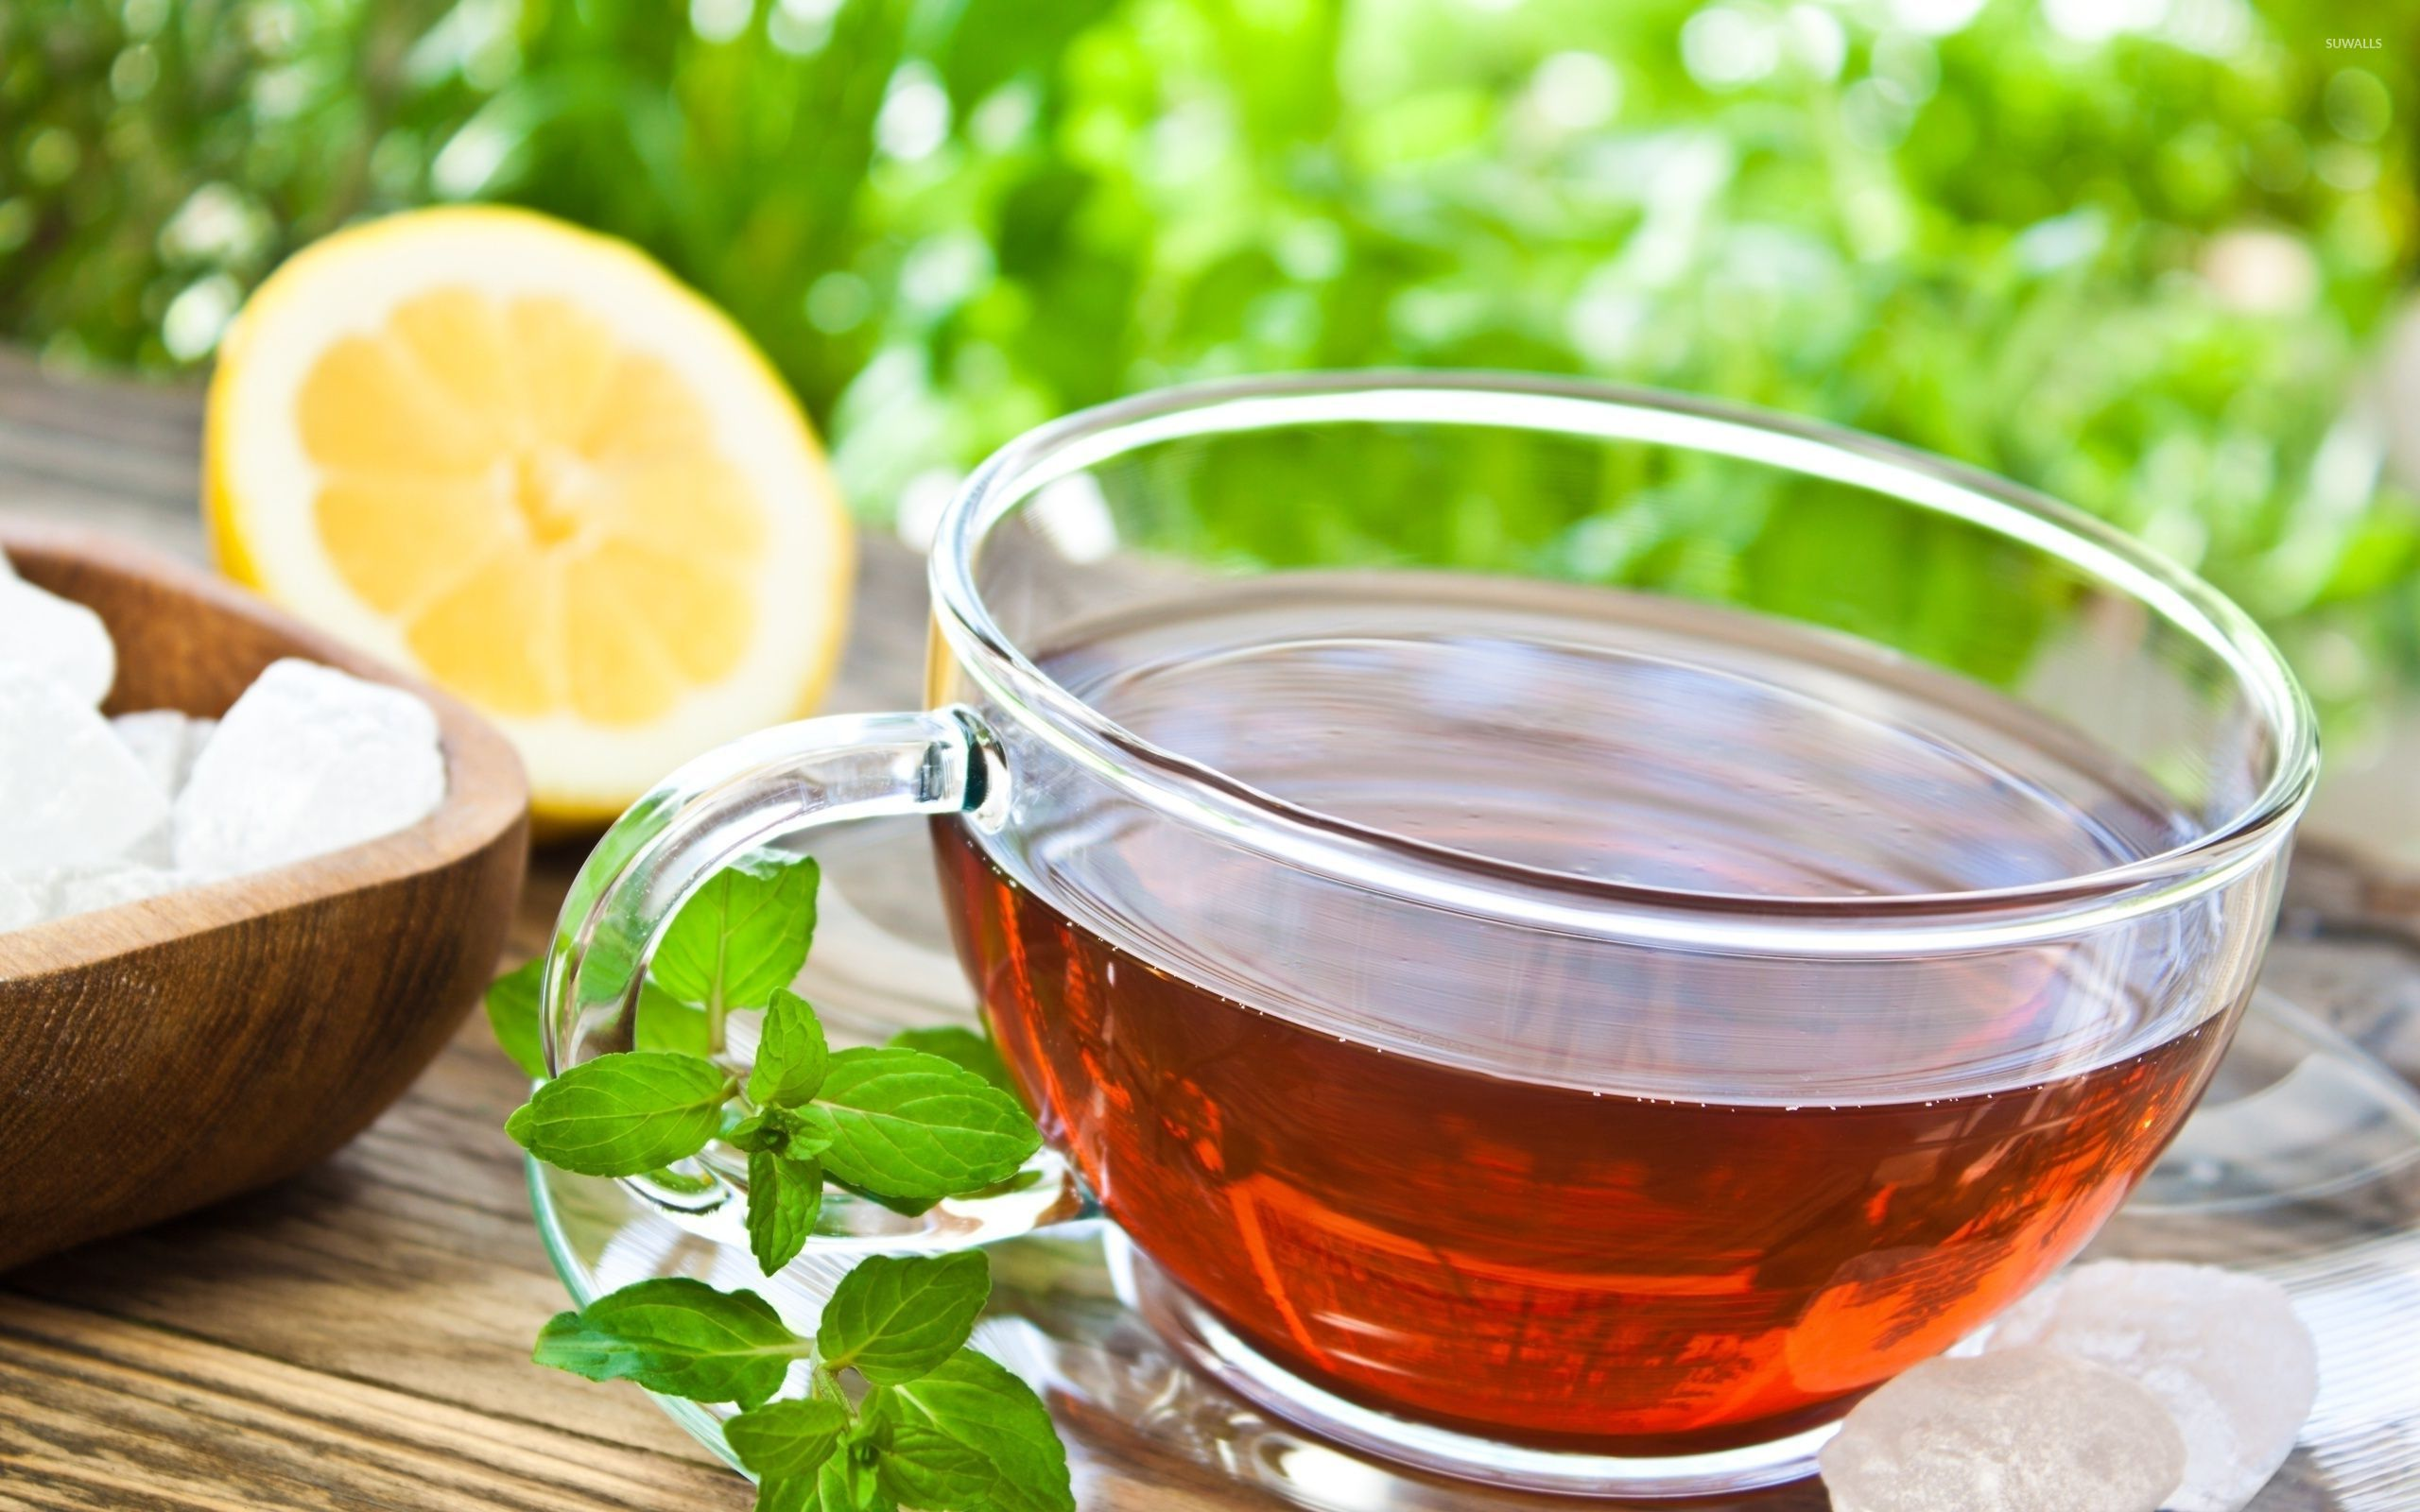 Cup of tea wallpaper   Photography wallpapers   32922 1280x800